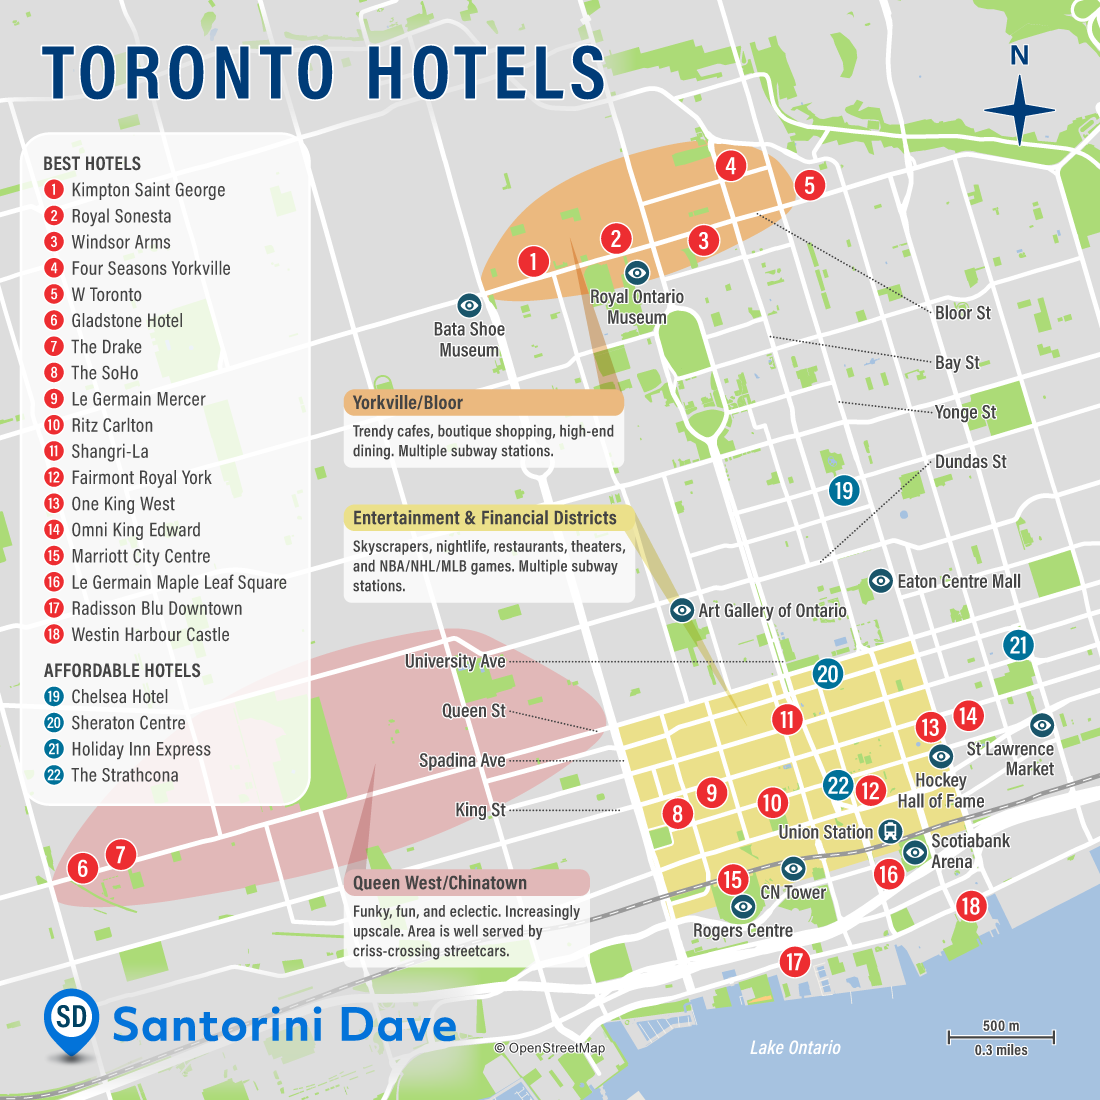 Map of Best Hotels and Neighborhoods in Toronto, Canada.